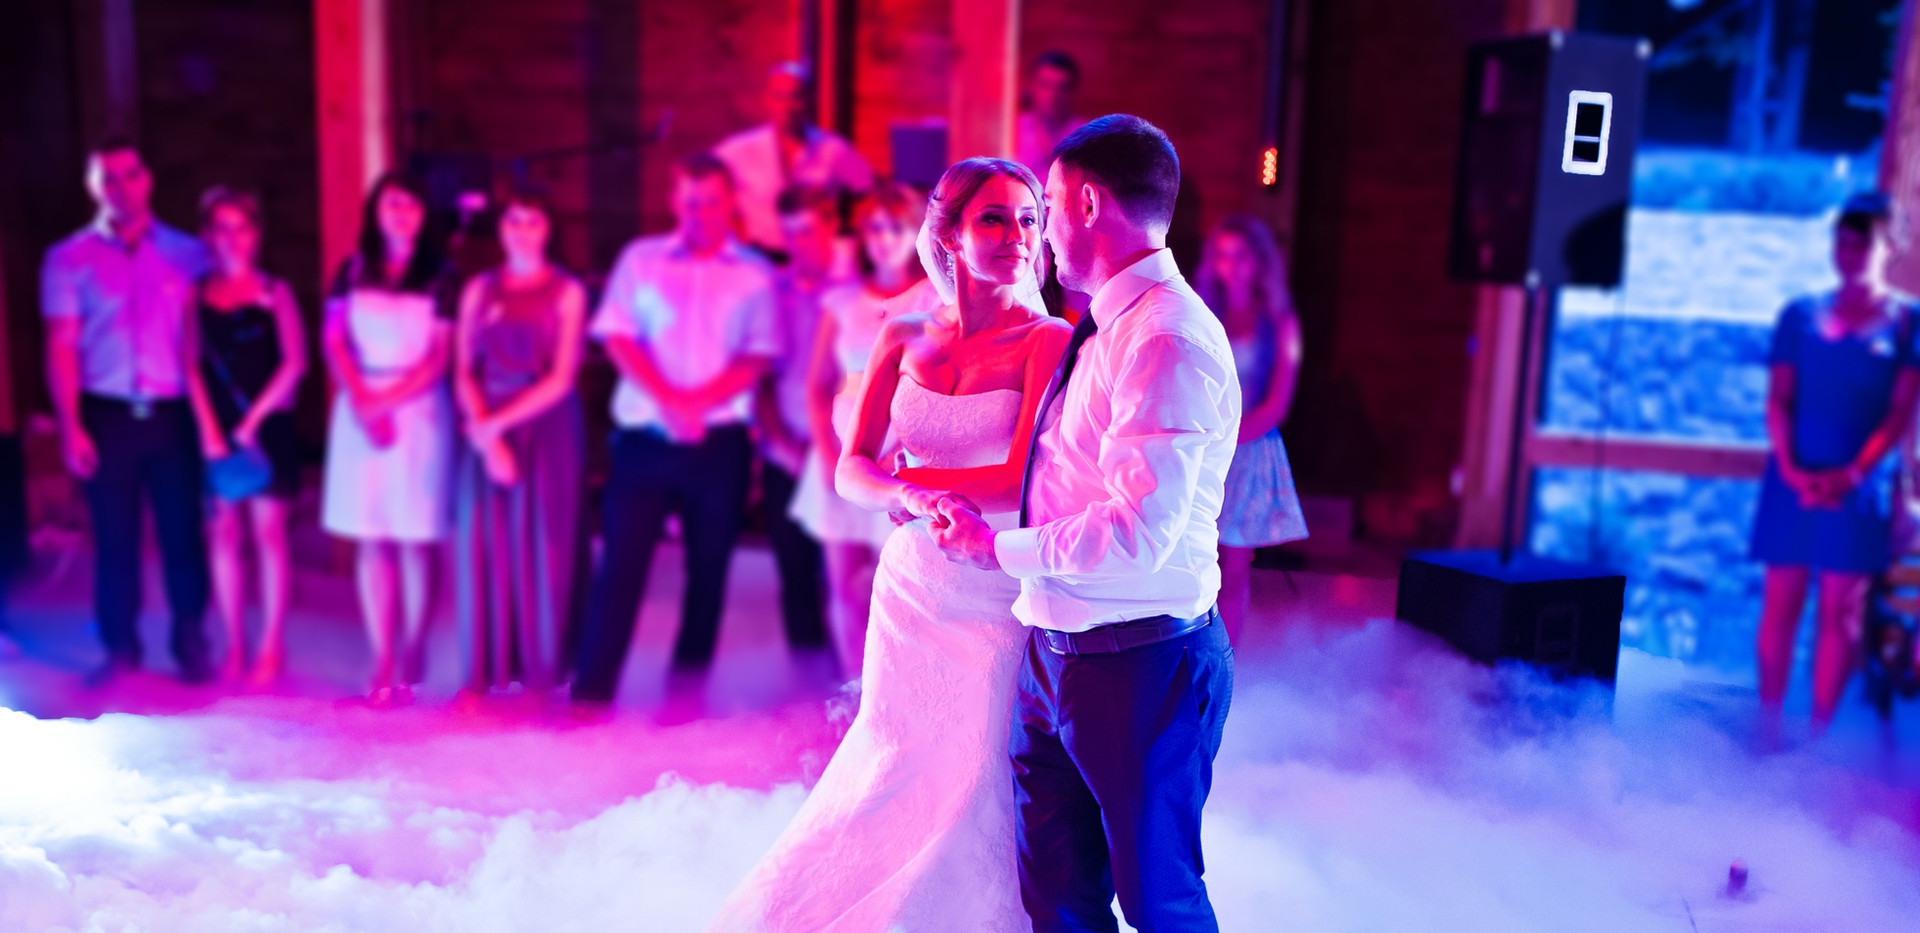 Climactic Entertainment offers affordable wedding dj services that feature low lying fog machines and confetti blasts.